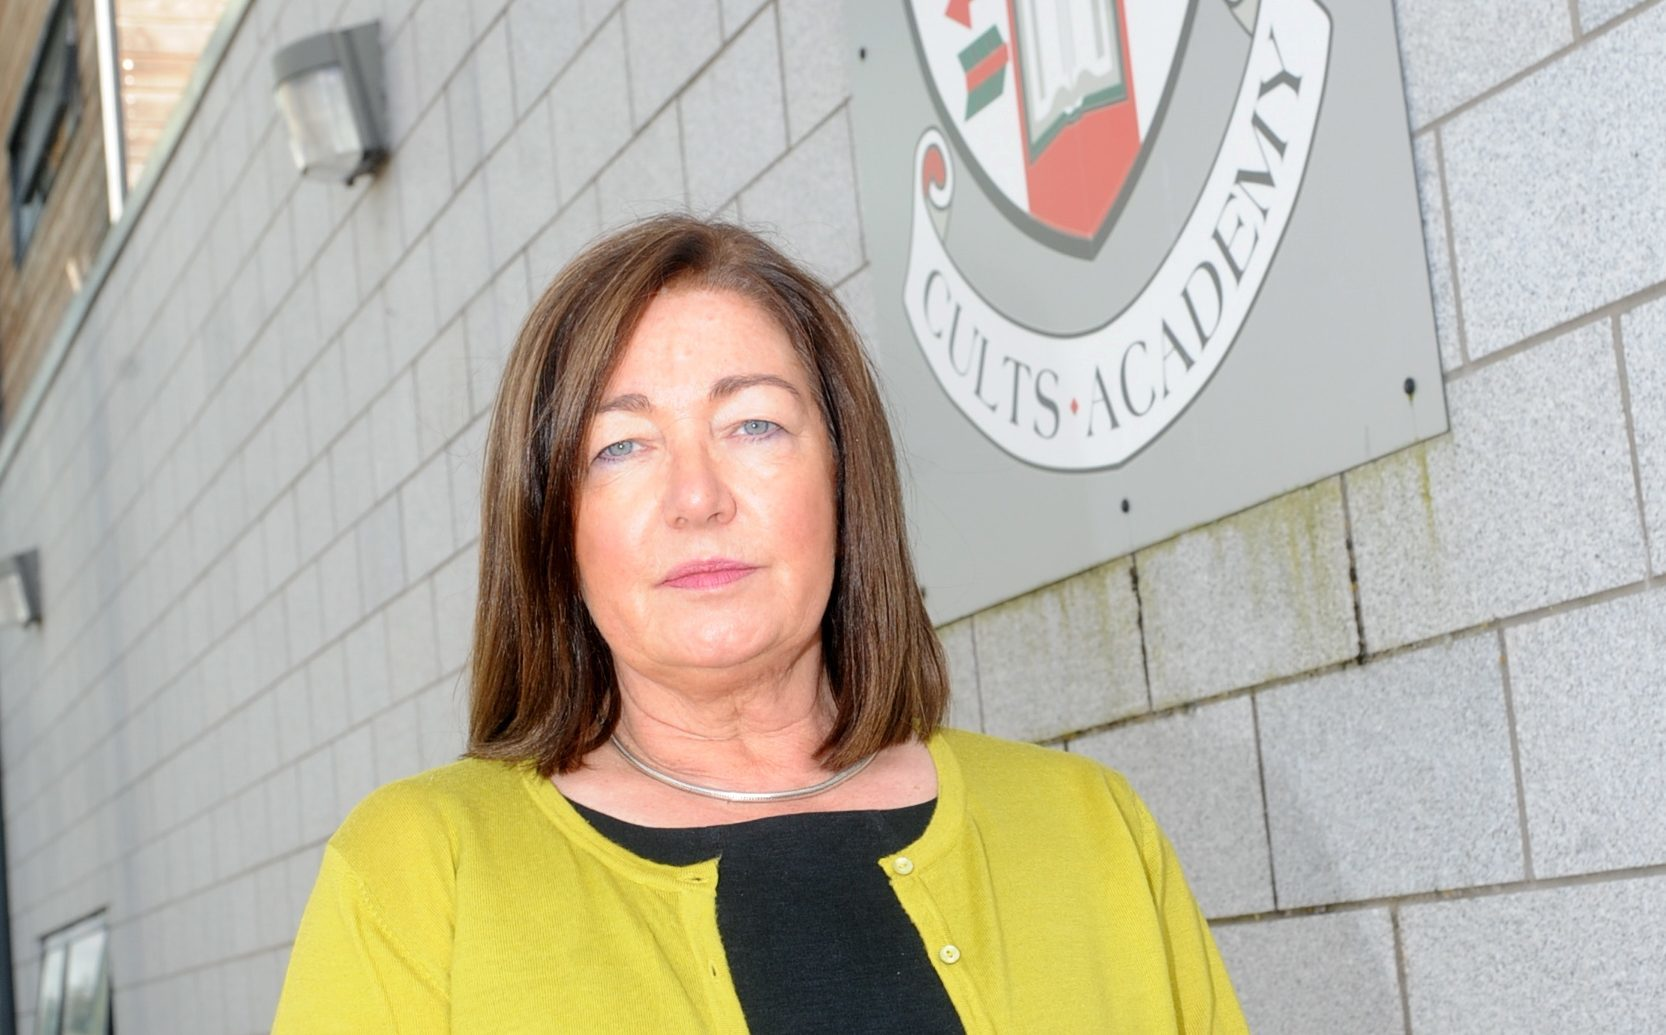 Cults Academy head teacher Anna Muirhead said a special assembly will be held at the school.